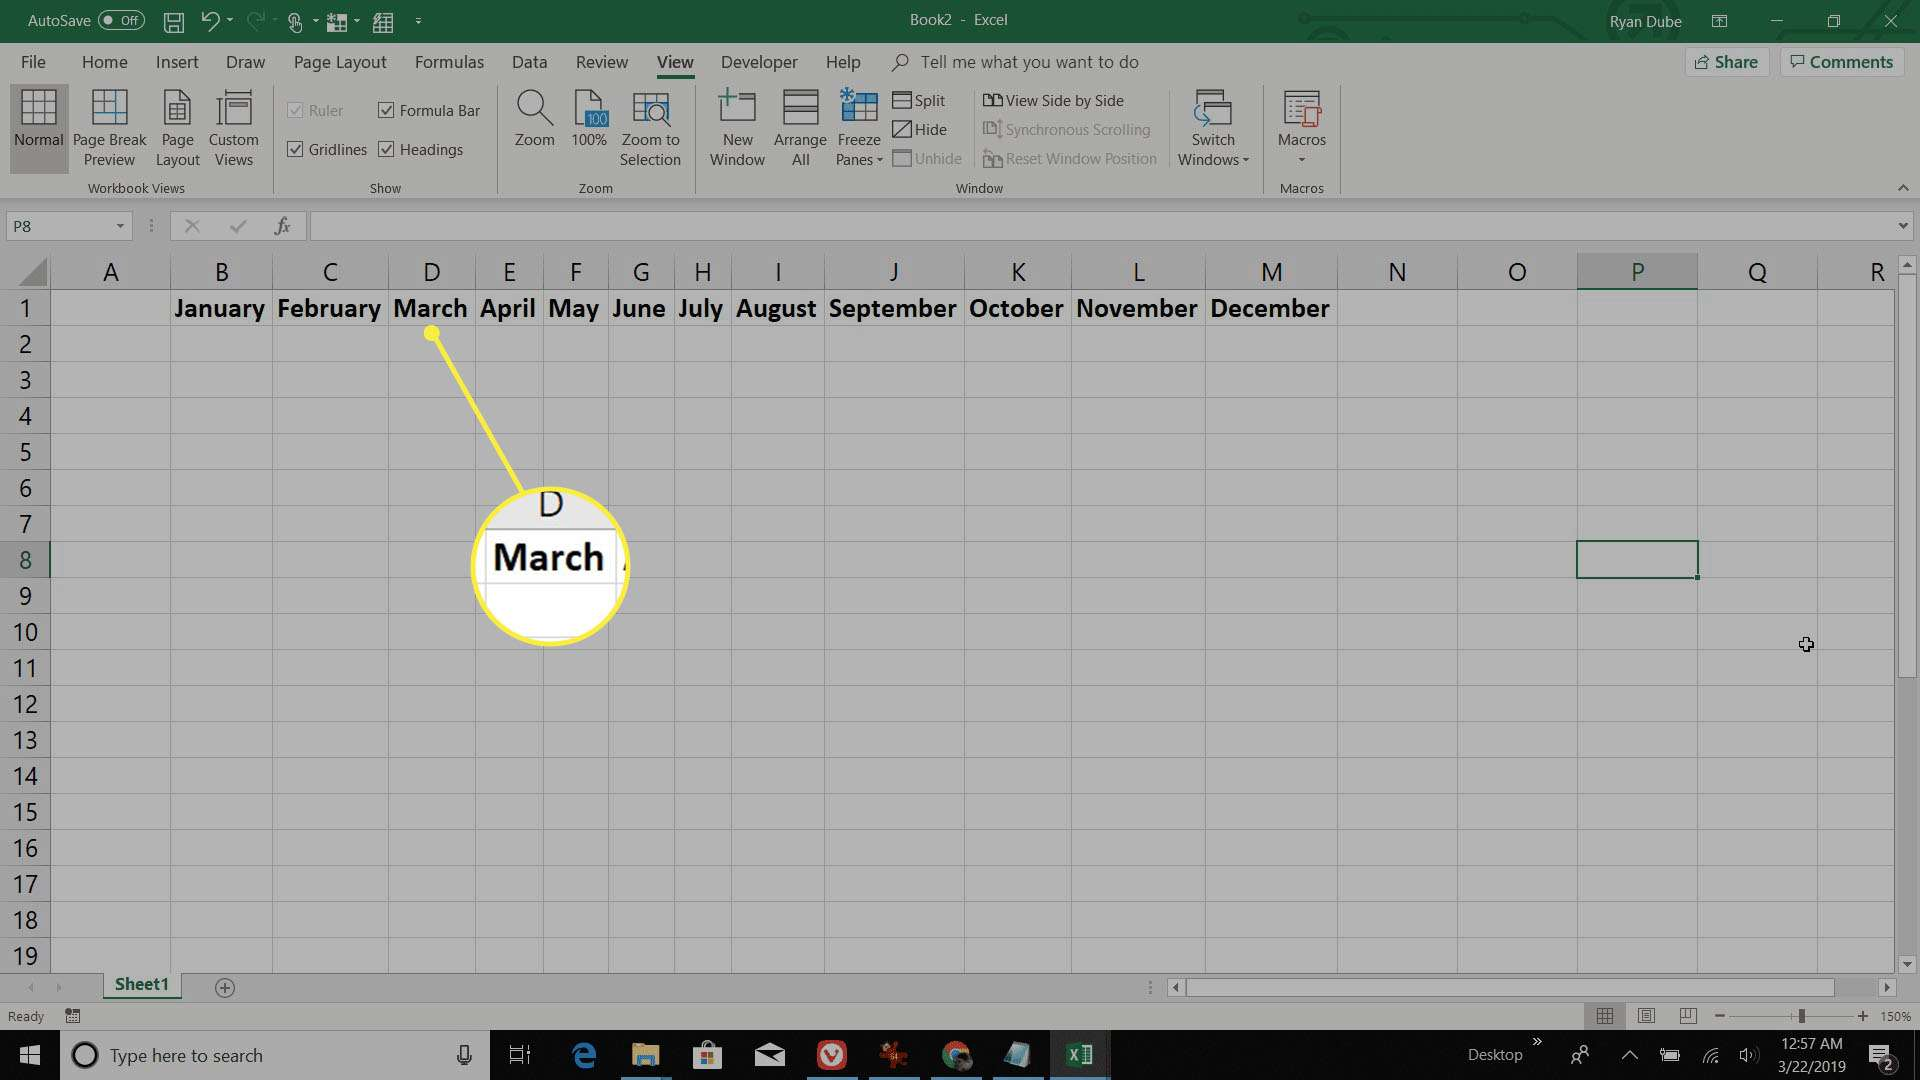 building the monthly row in Excel